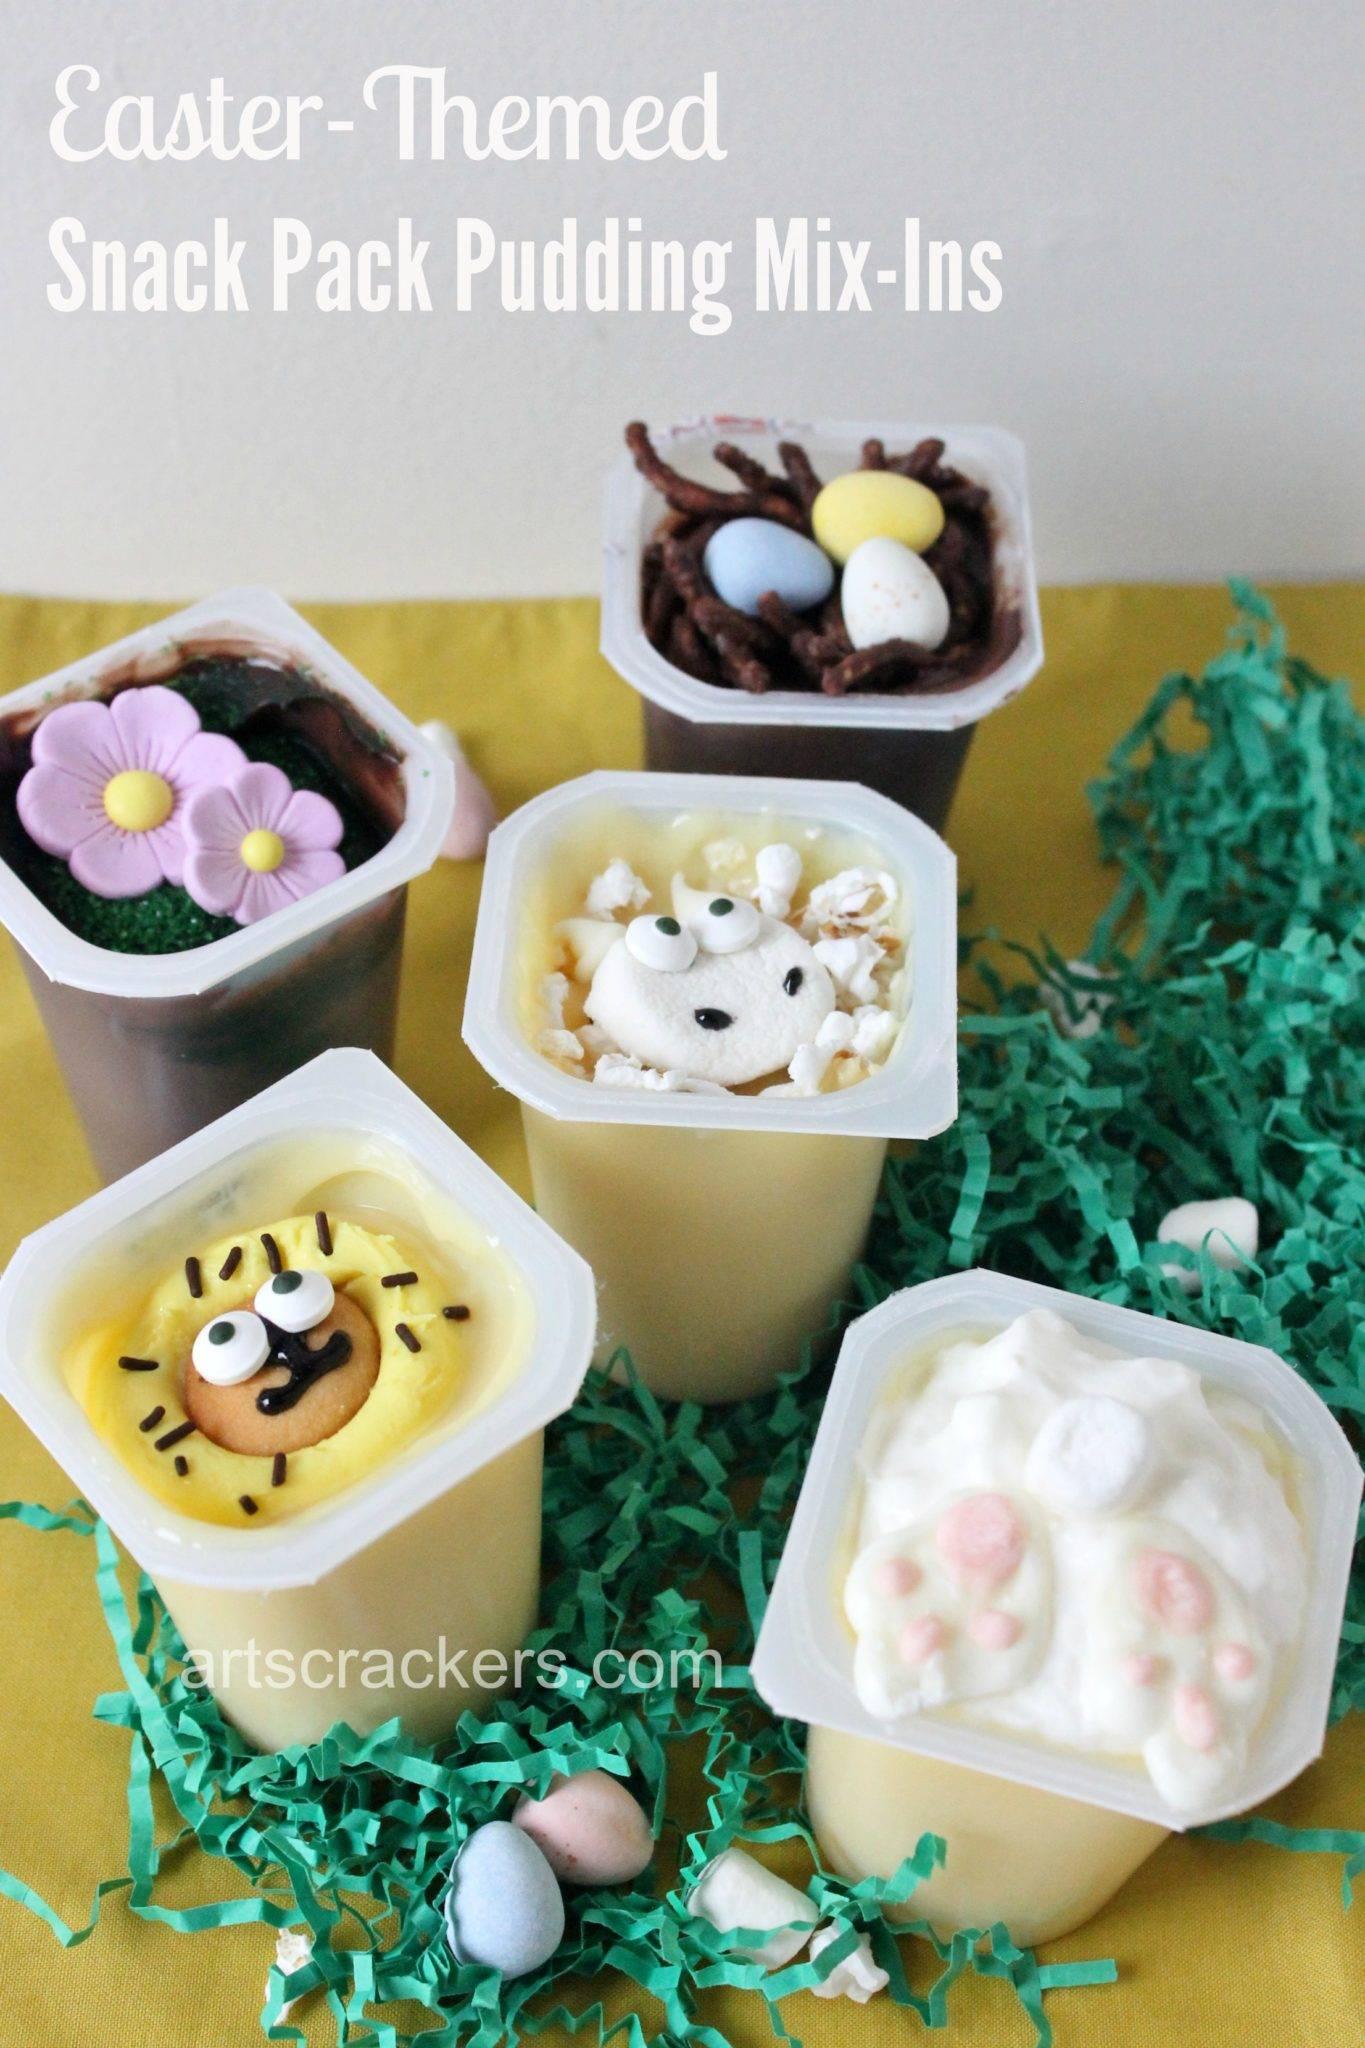 Snack Pack Pudding Easter Themed Mix Ins. Click the picture to view instructions.